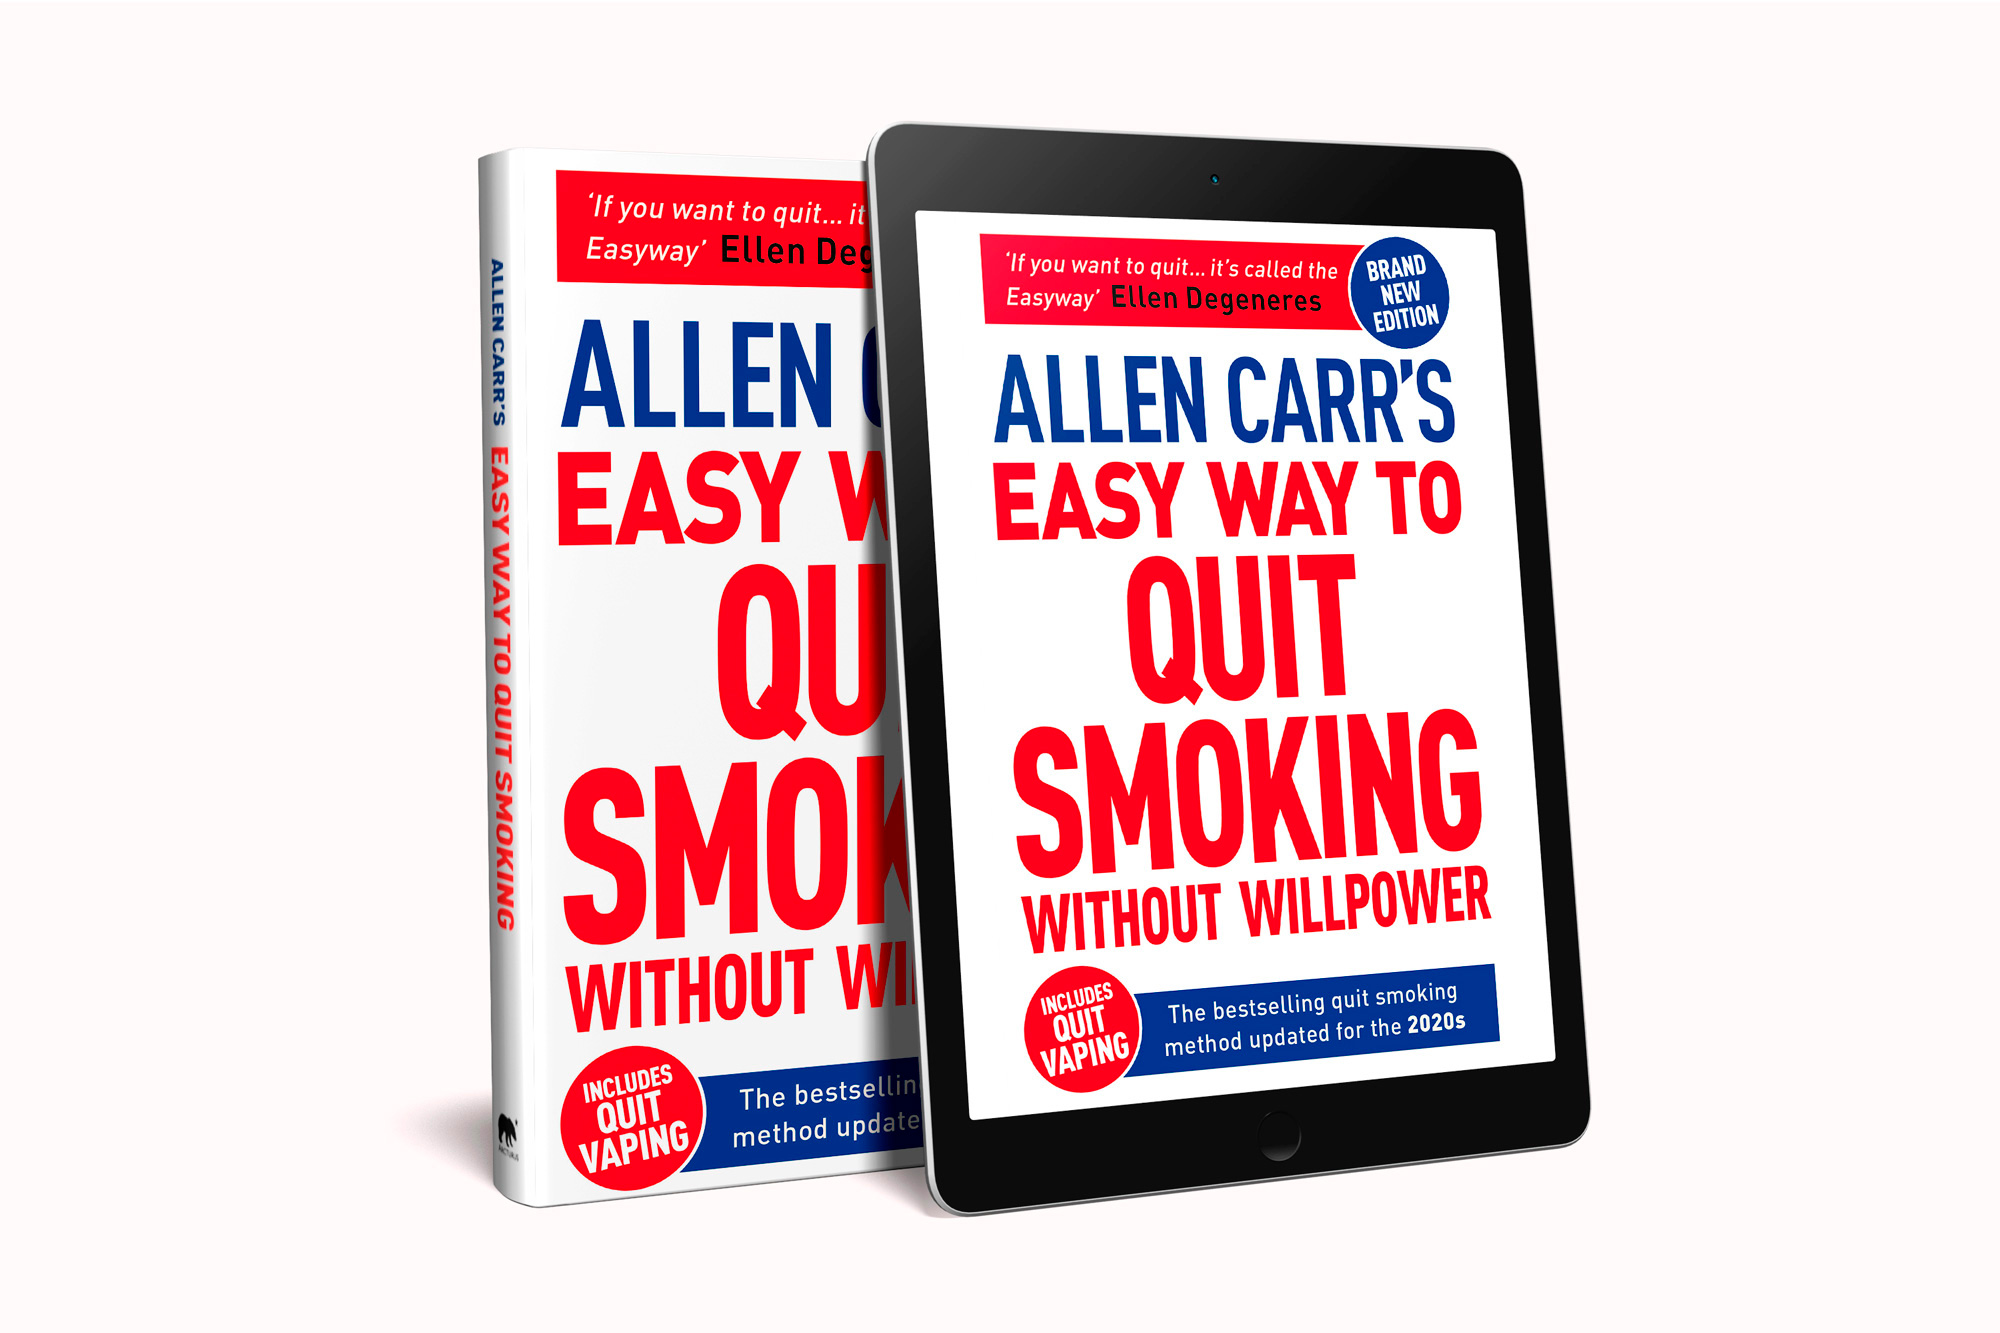 Easy Way to Quit Smoking Without Willpower